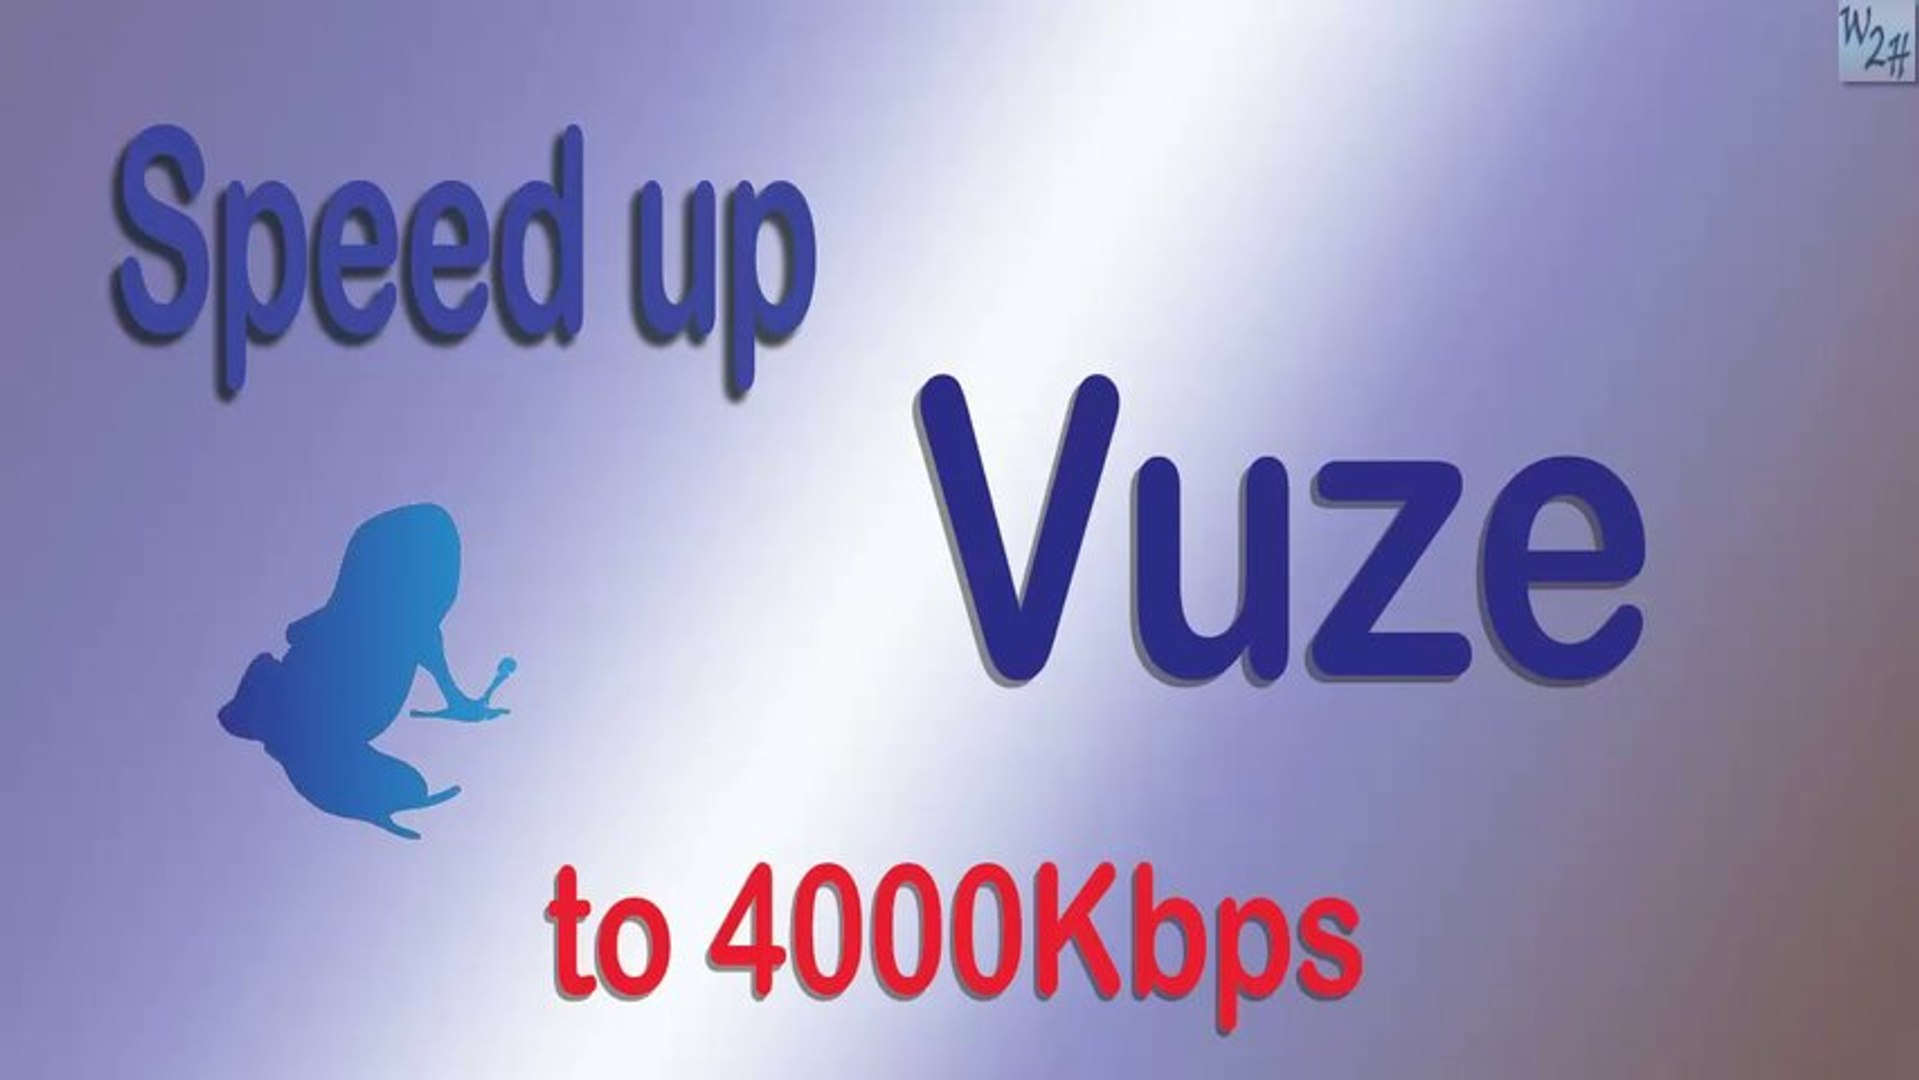 Speed up Vuze download to 4Mbps-2014 Latest Settings